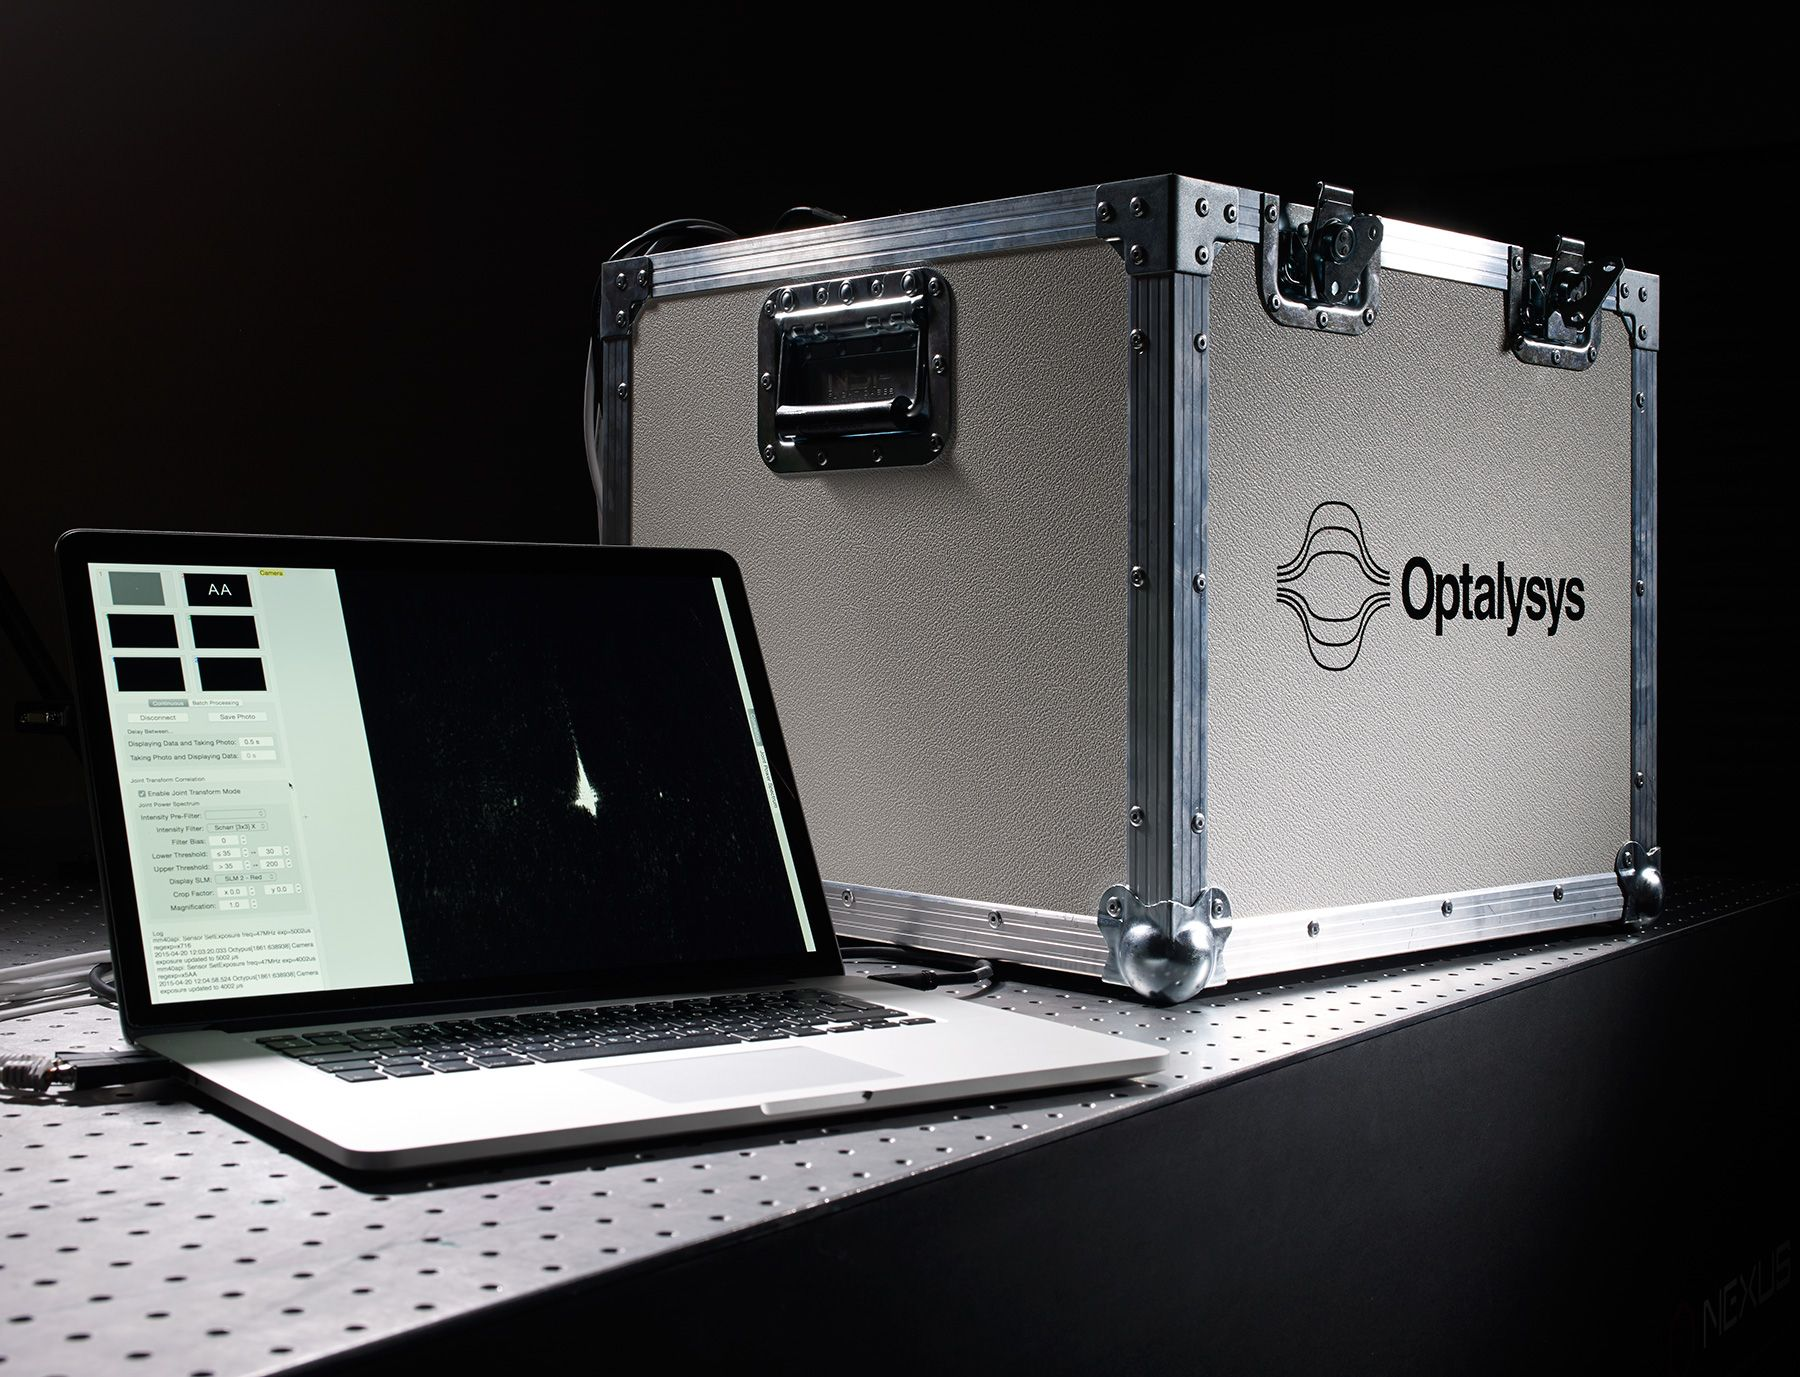 An Optalysys demonstrator model, which uses light to perform mathematical functions